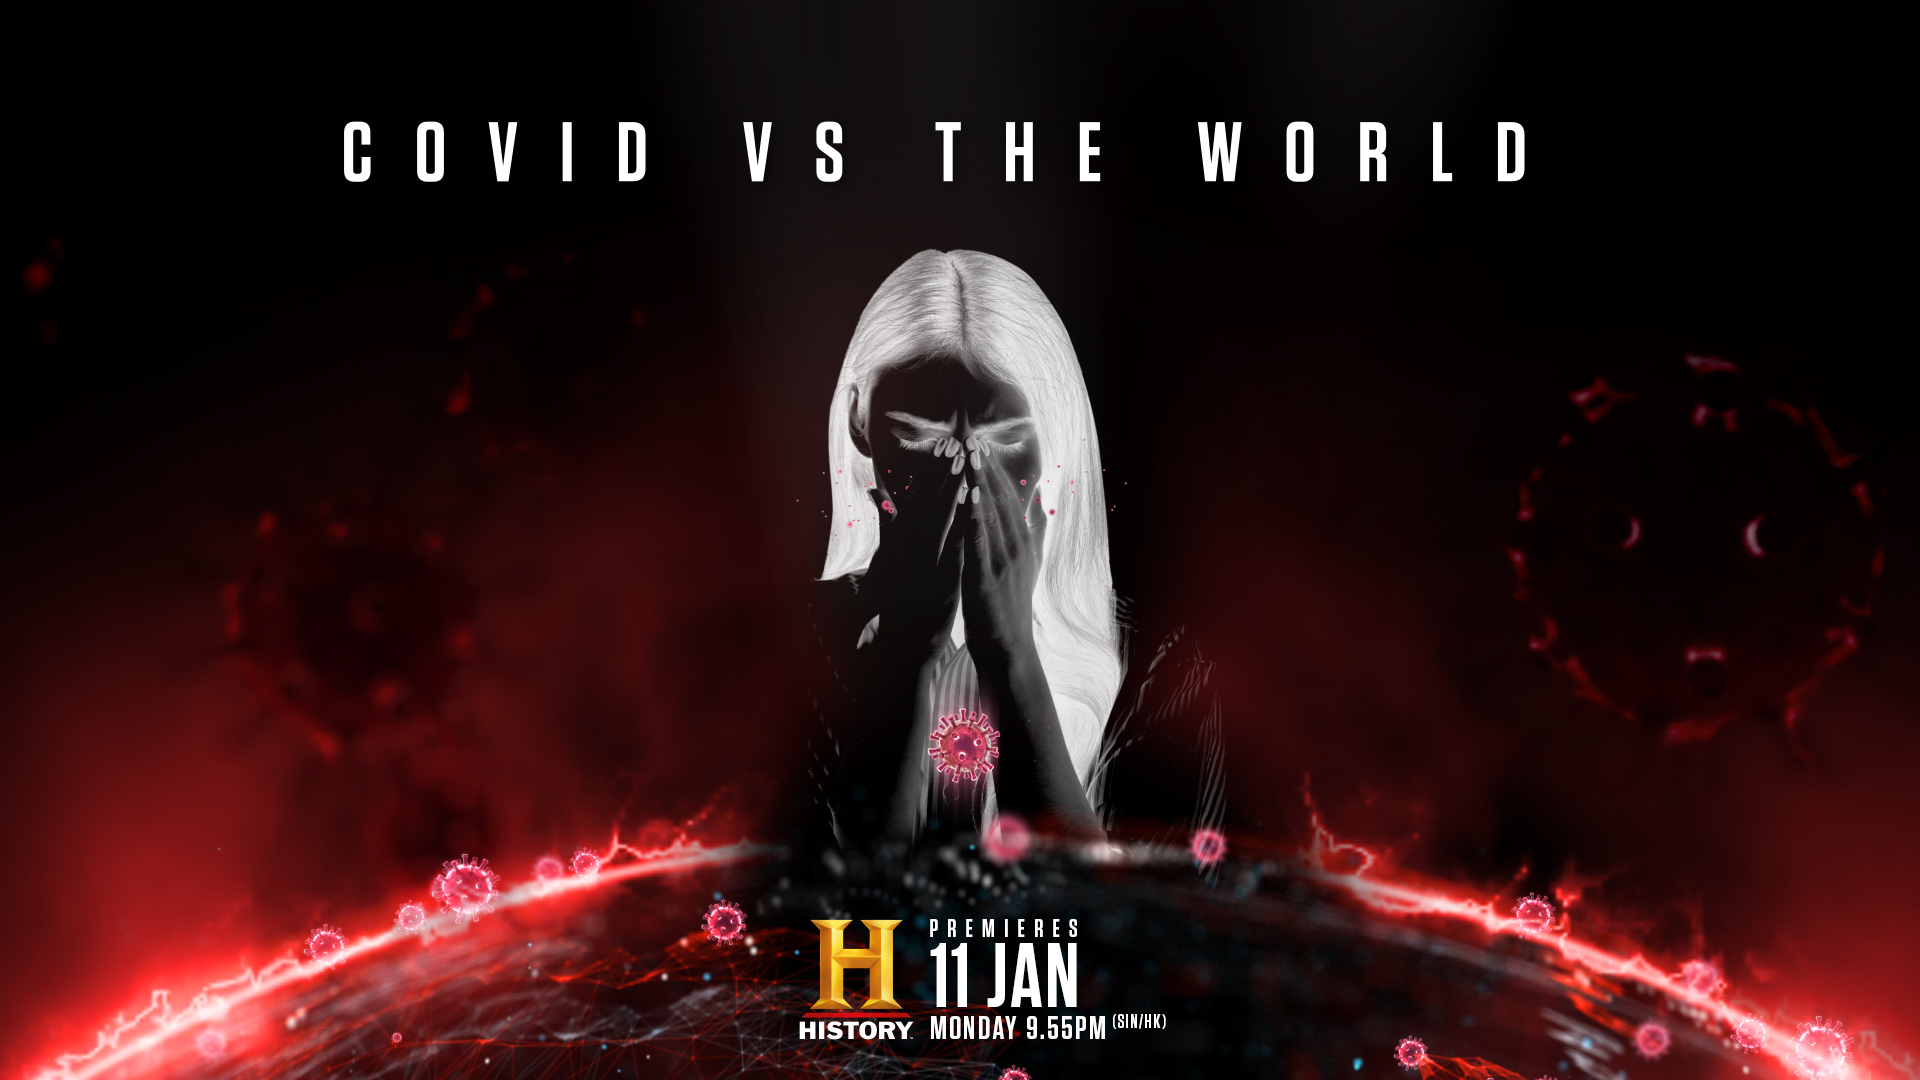 The HISTORY Channel™ to broadcast original production 'COVID vs The World' across Southeast Asia